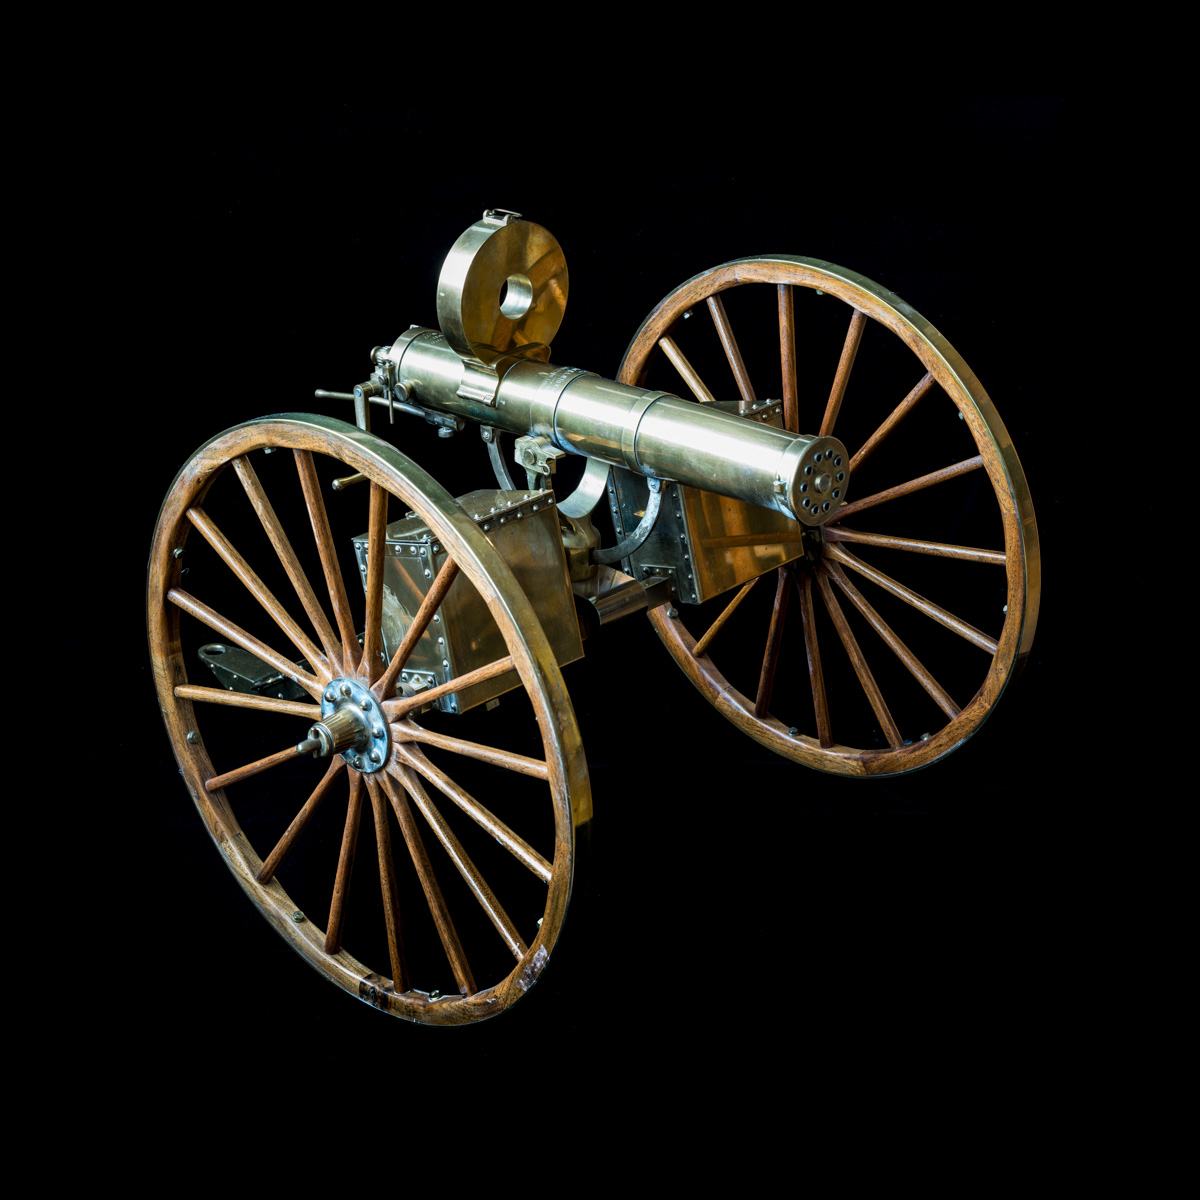 Gatling Gun 1-3rd size model-7